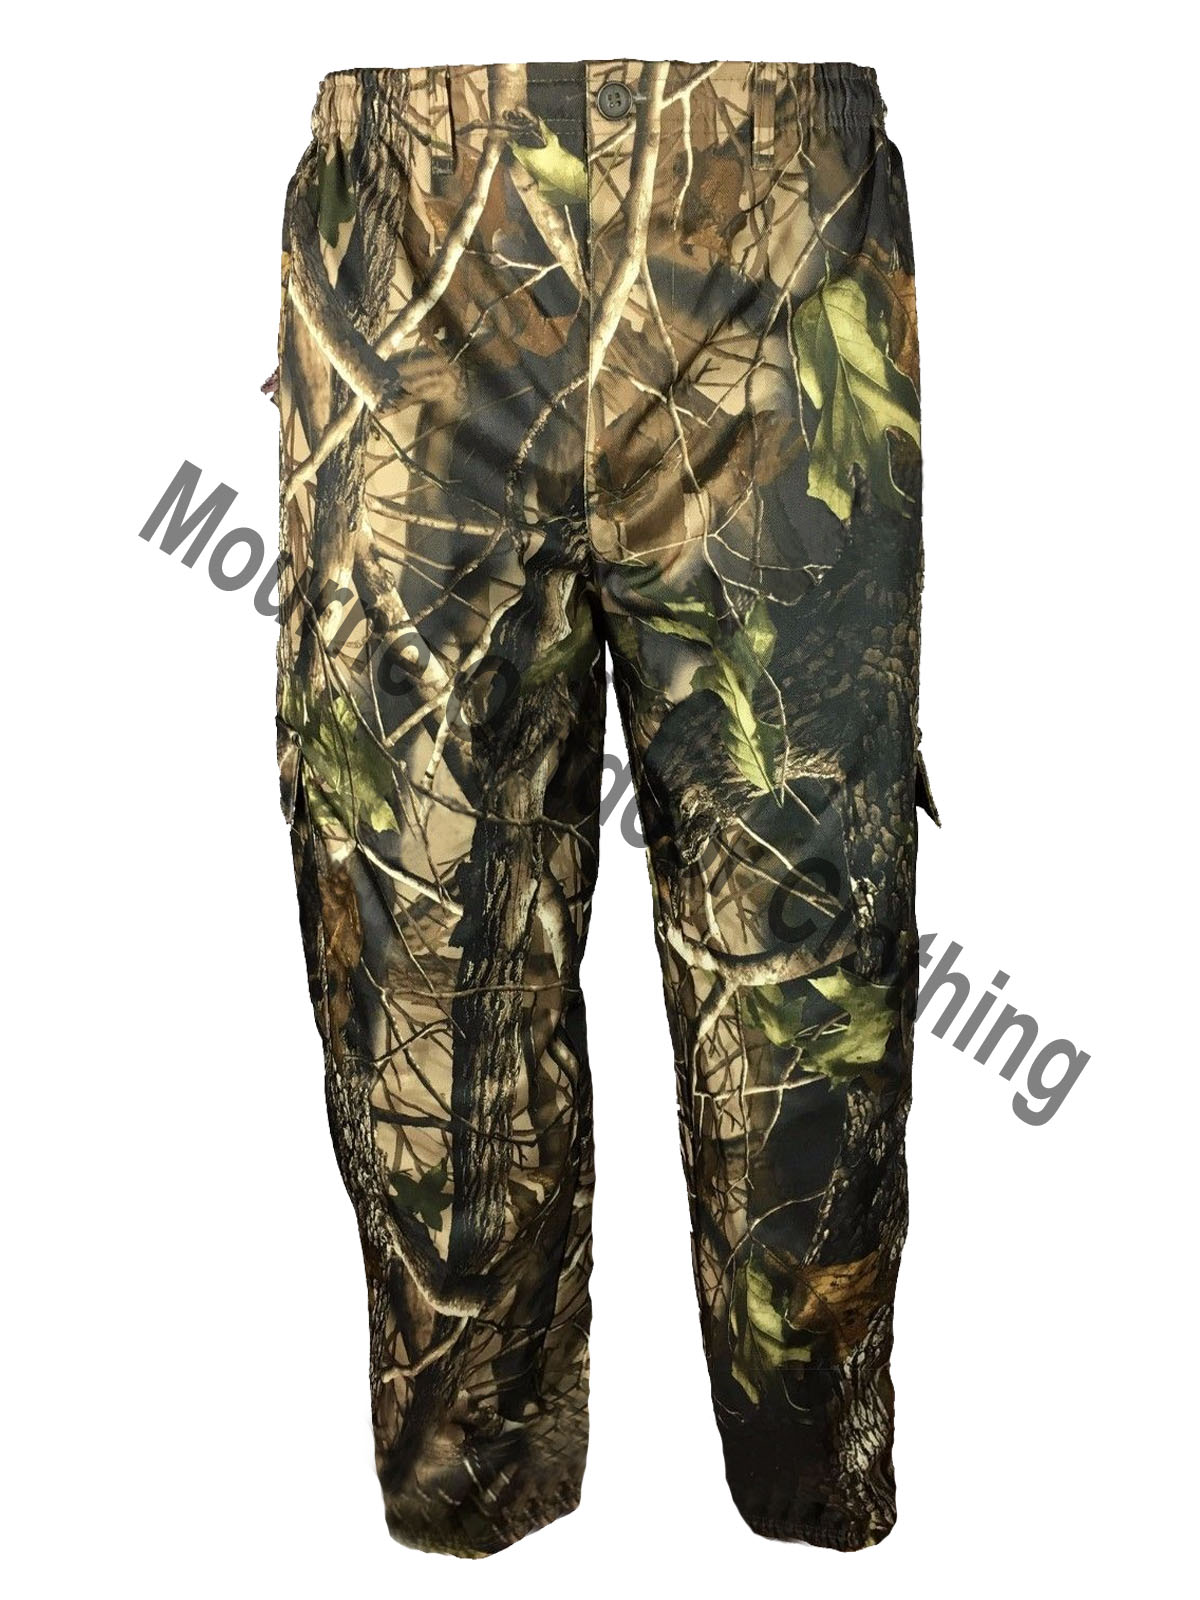 Realtree Camouflage Waterproof Hunting Trouser